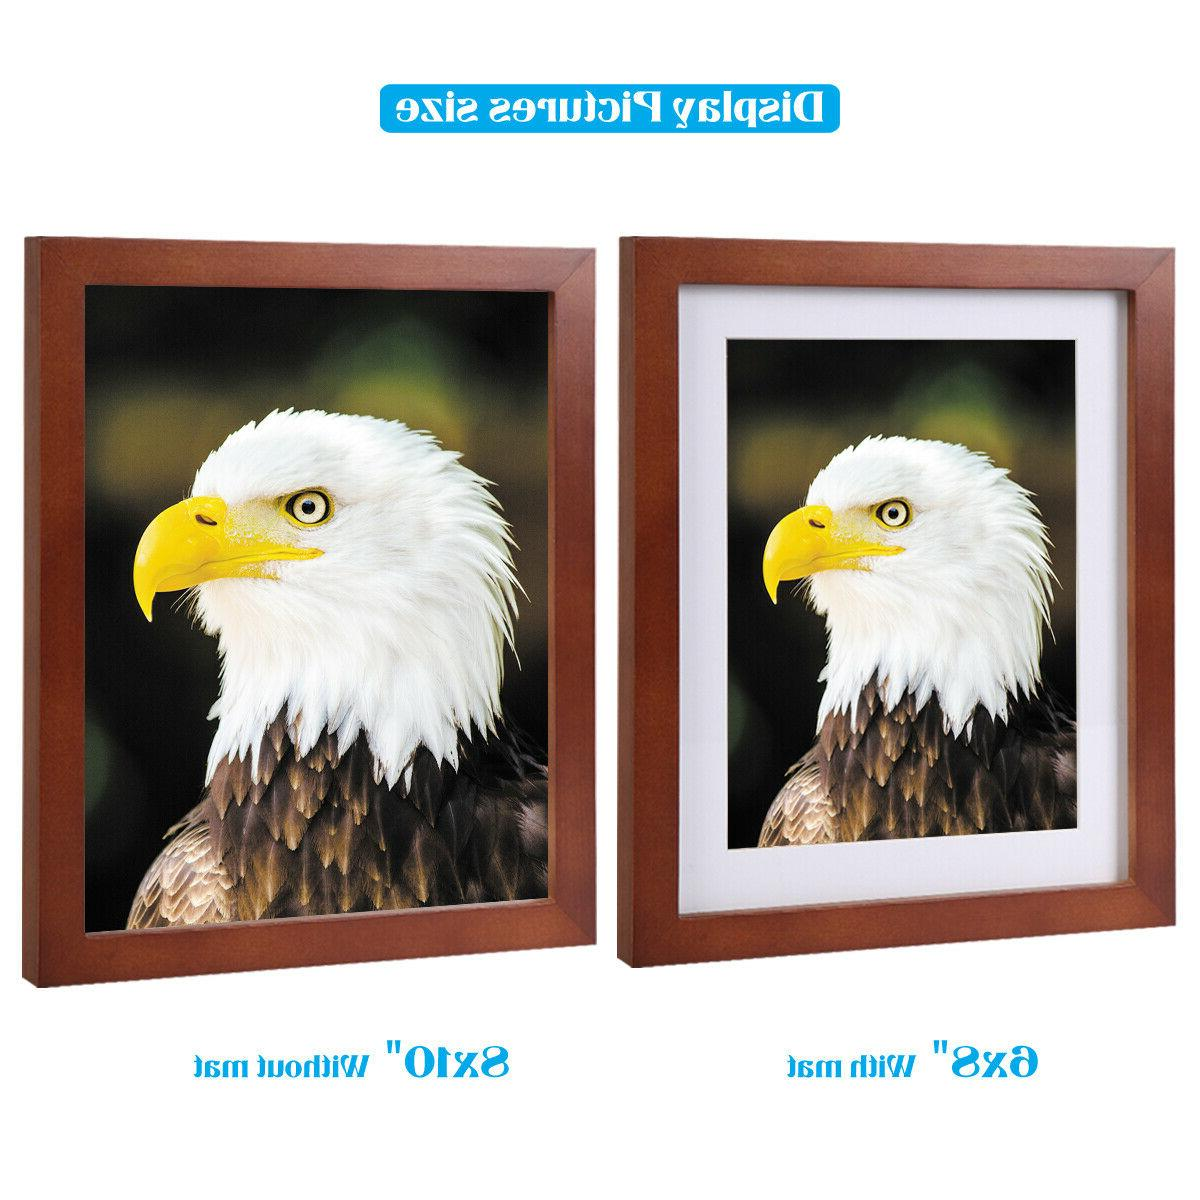 8x10 Picture Table Display brown